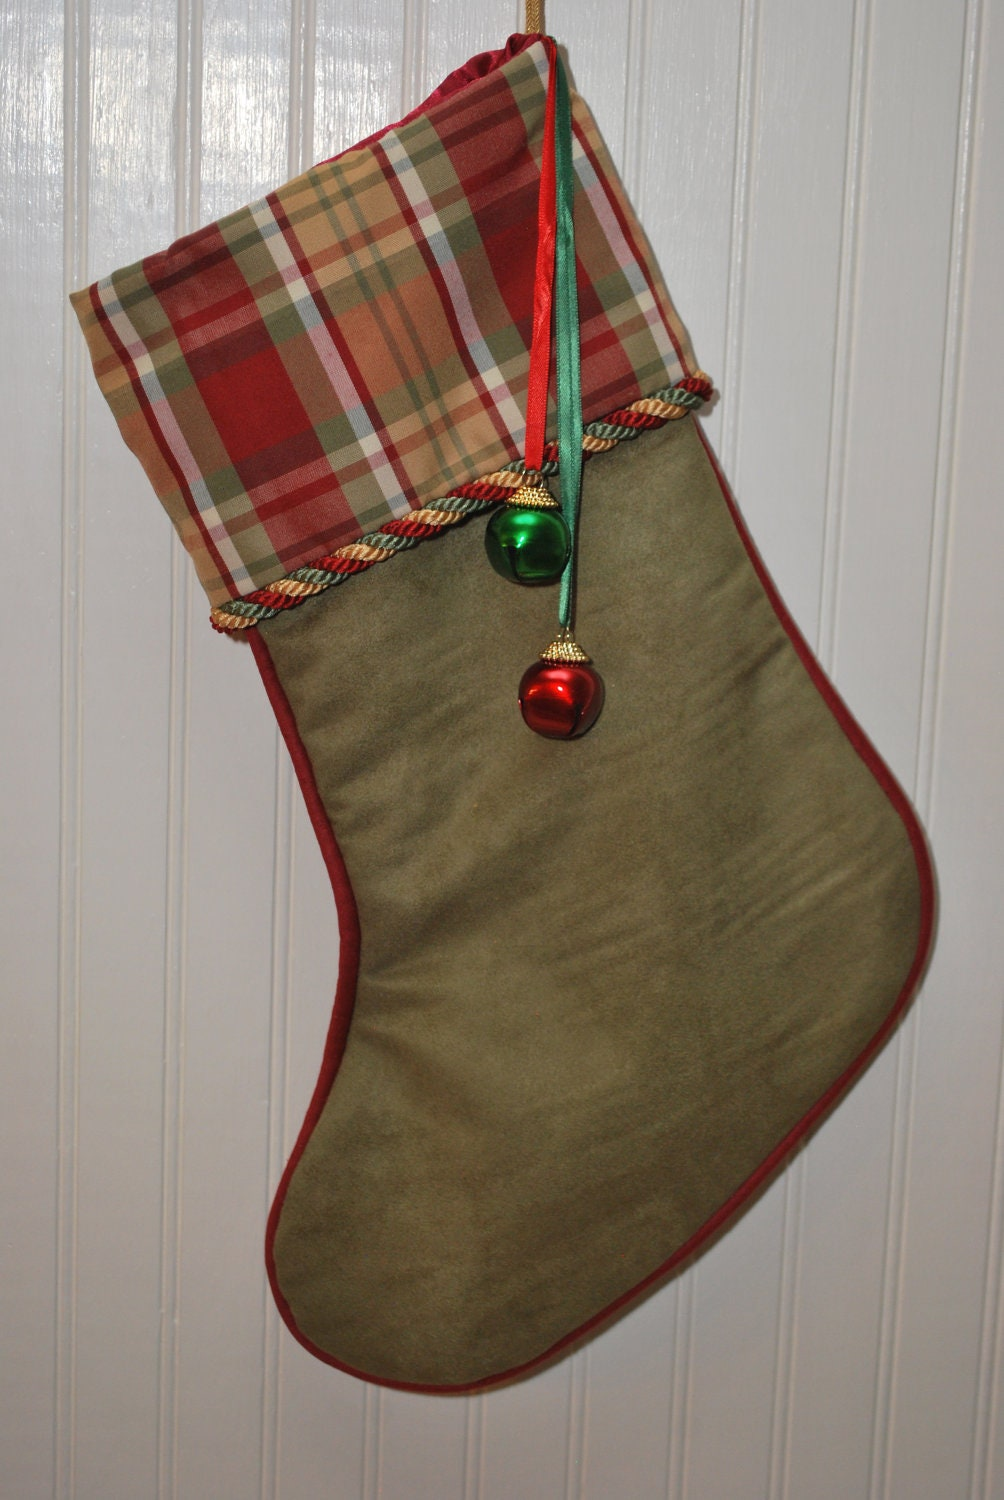 Christmas Stocking Plaid Green Gold and Red with Glitzy Jumbo Jingle Bell Trim